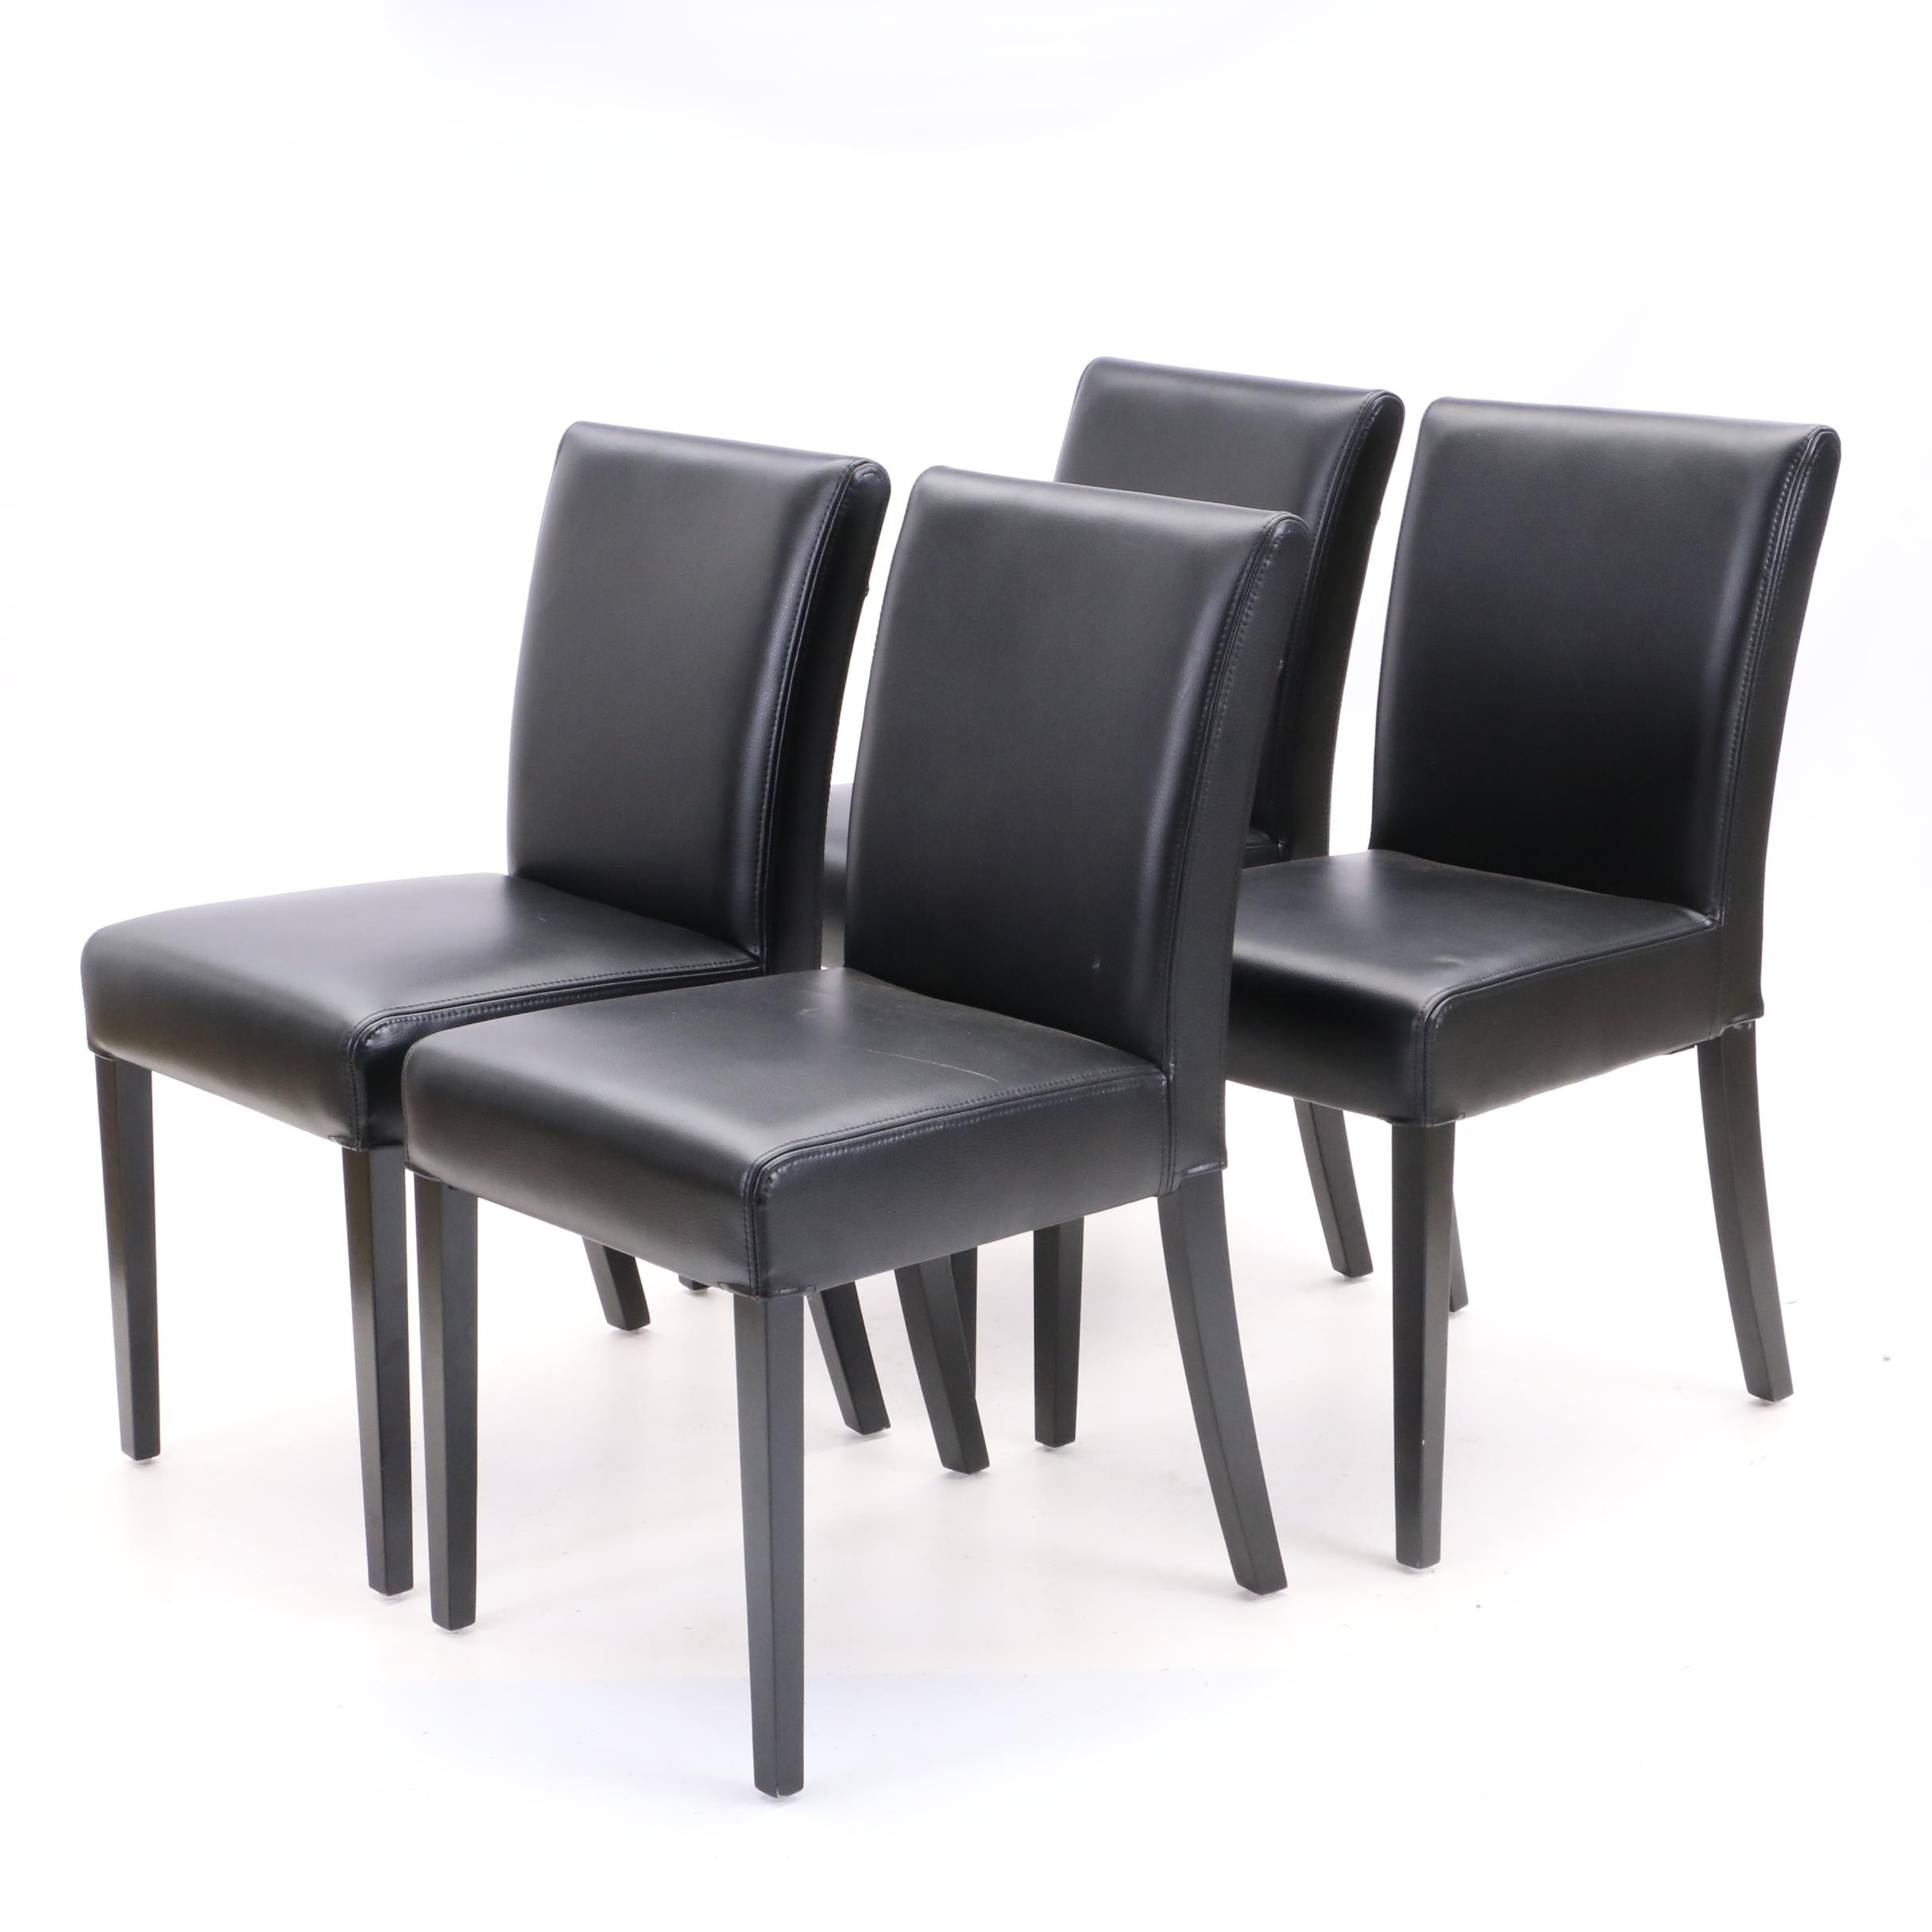 Crate and Barrel Side Chairs